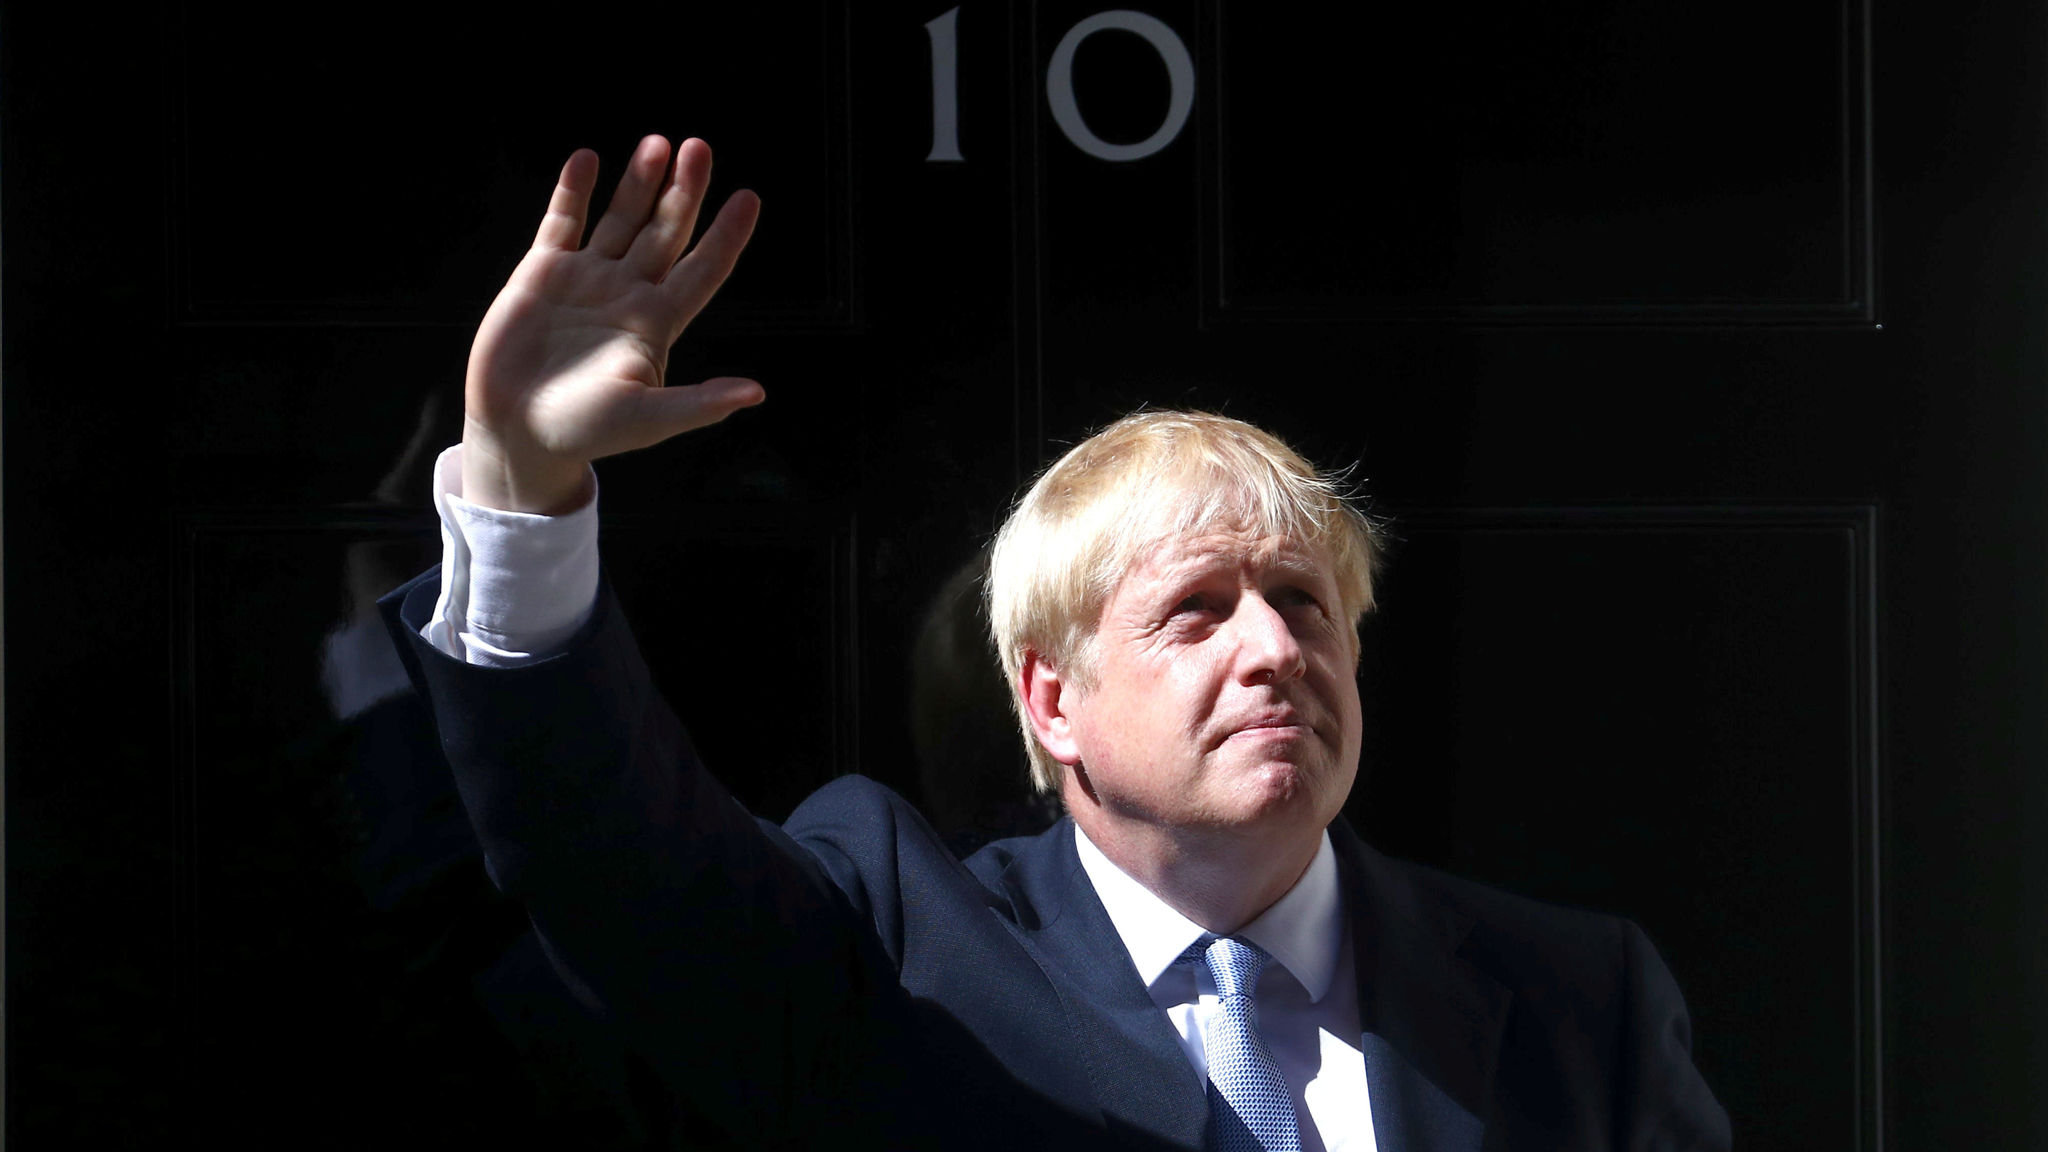 Britain's new Prime Minister, Boris Johnson, enters Downing Street, in London